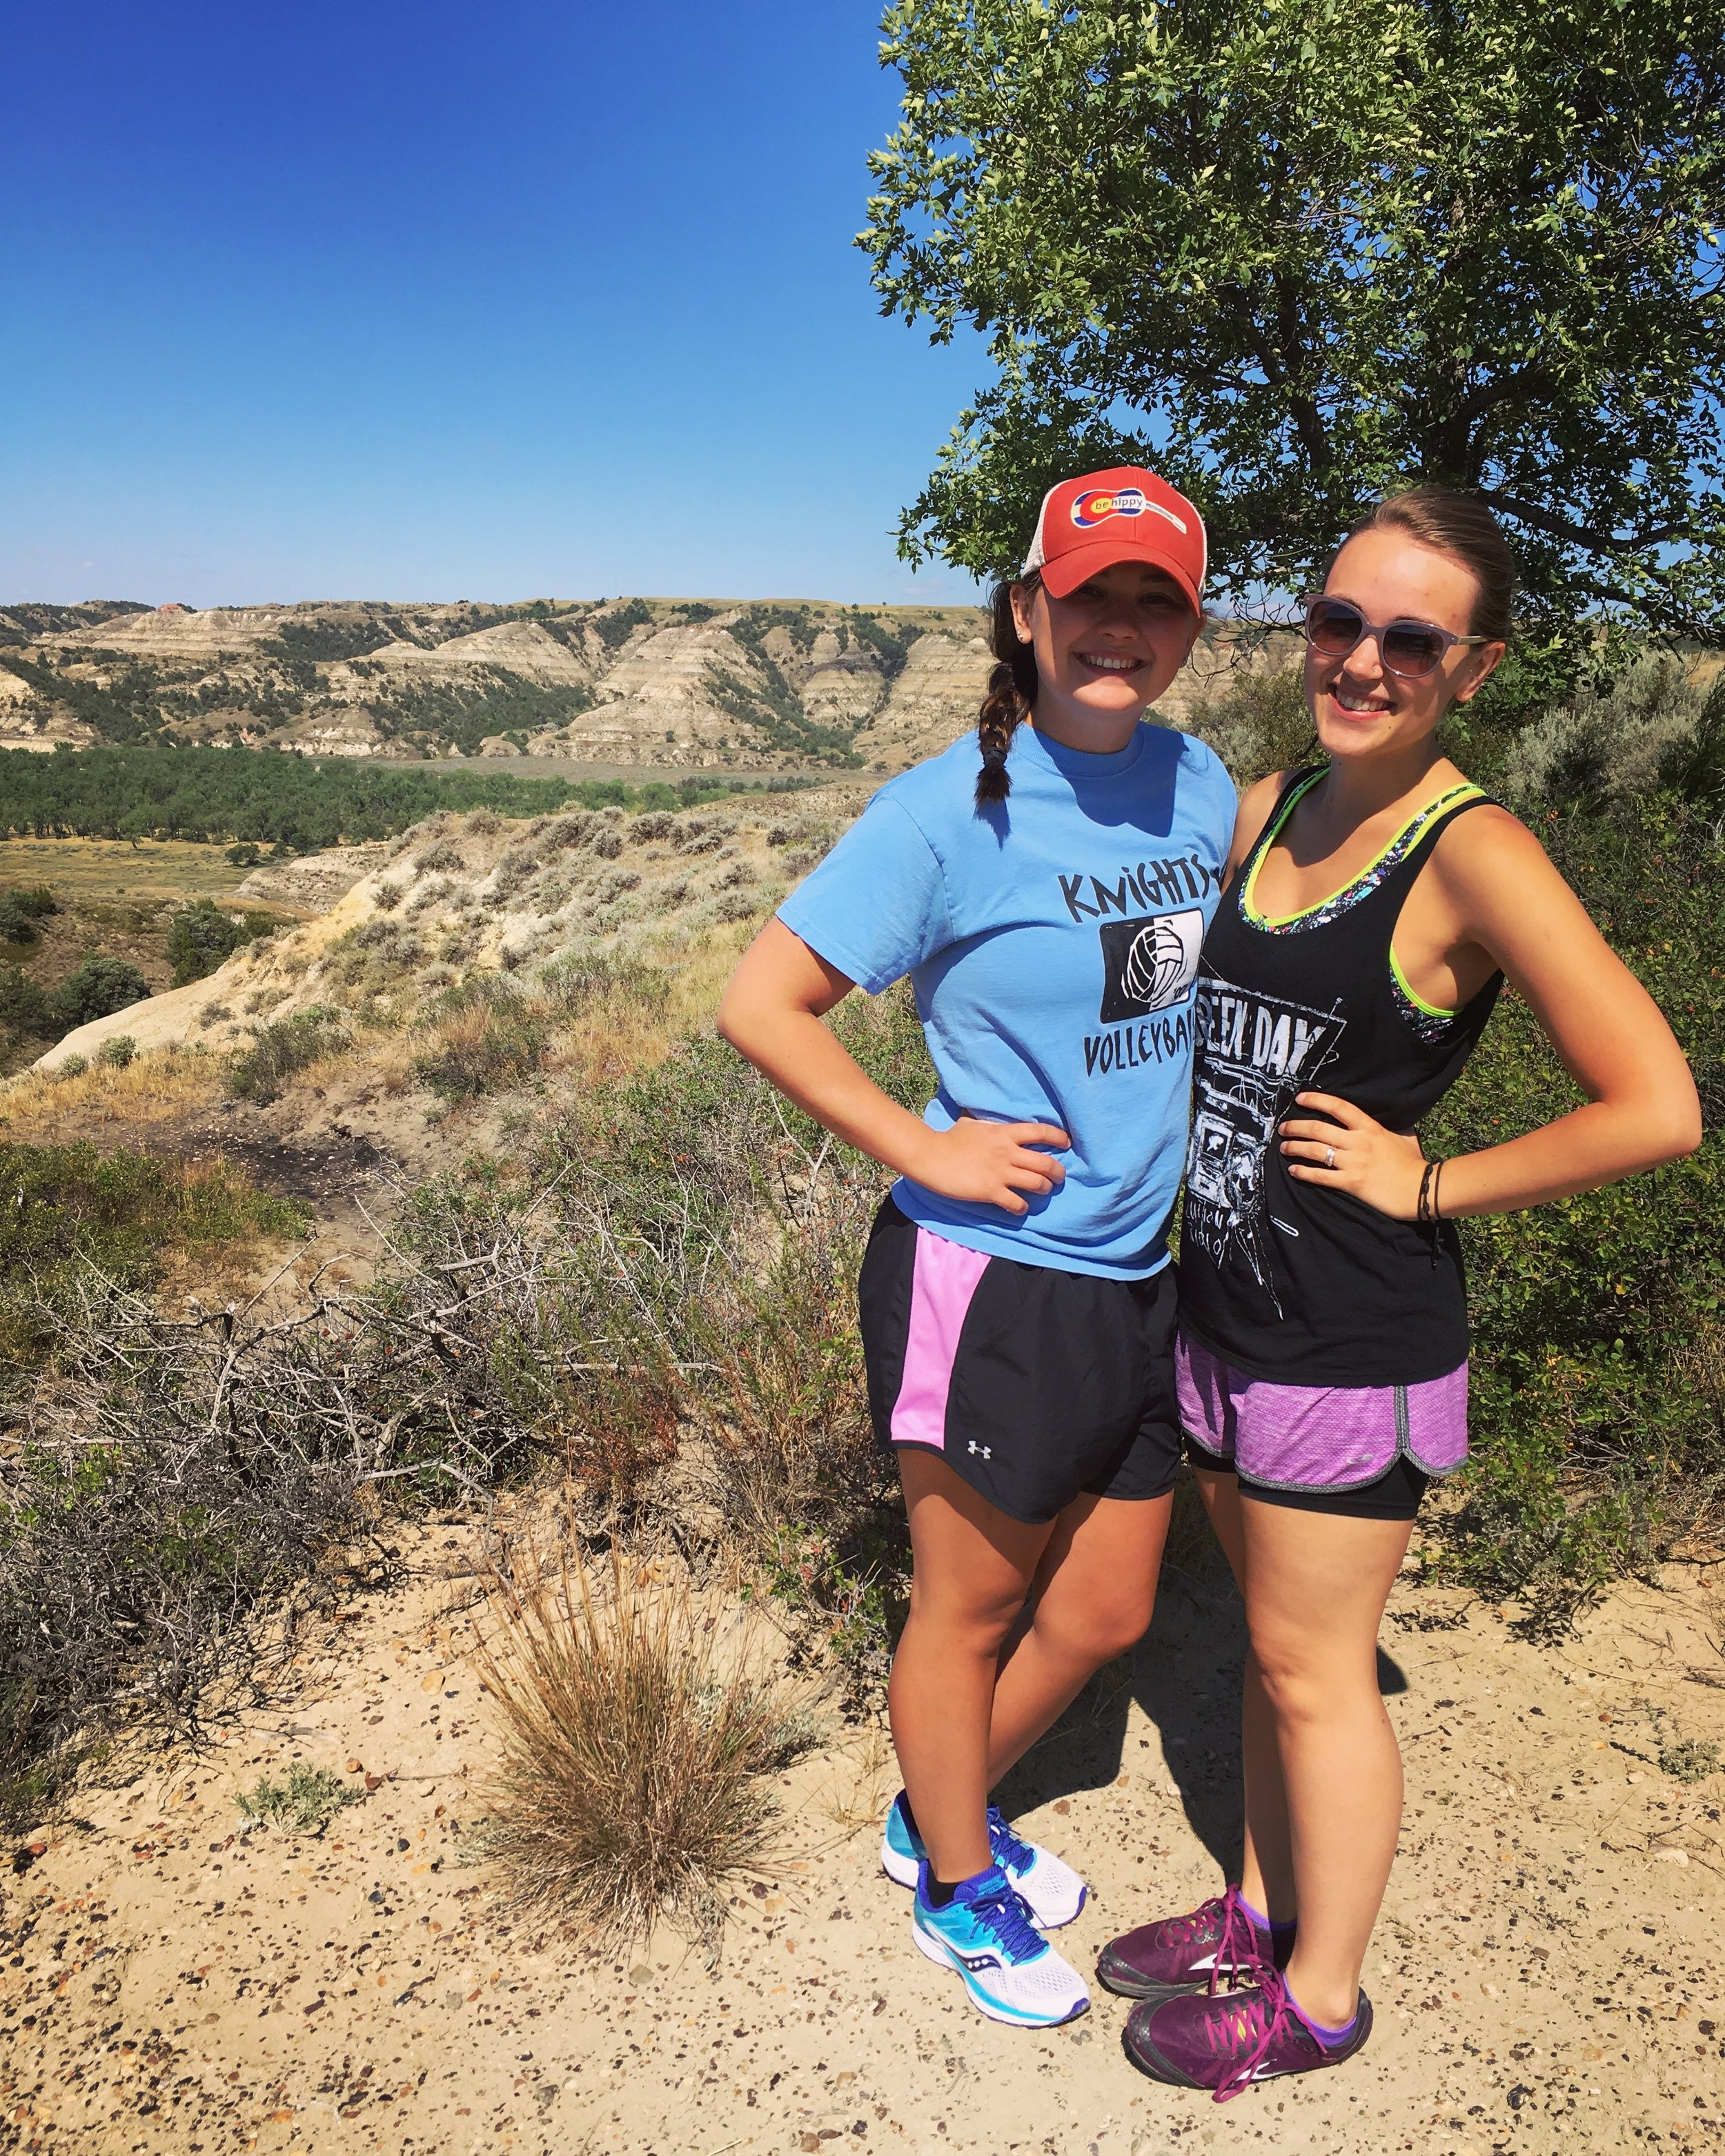 In early August,Kyli Jo talked me into flying to Denver to meet her while she visited extended family. We explored Colorado and then drove back to Fargo, making a pitstop in the North Dakota Badlands to meet up with my momma and her youth group girls to see the  Medora Musical  and do some hiking in  Theodore Roosevelt National Park  (pictured above).